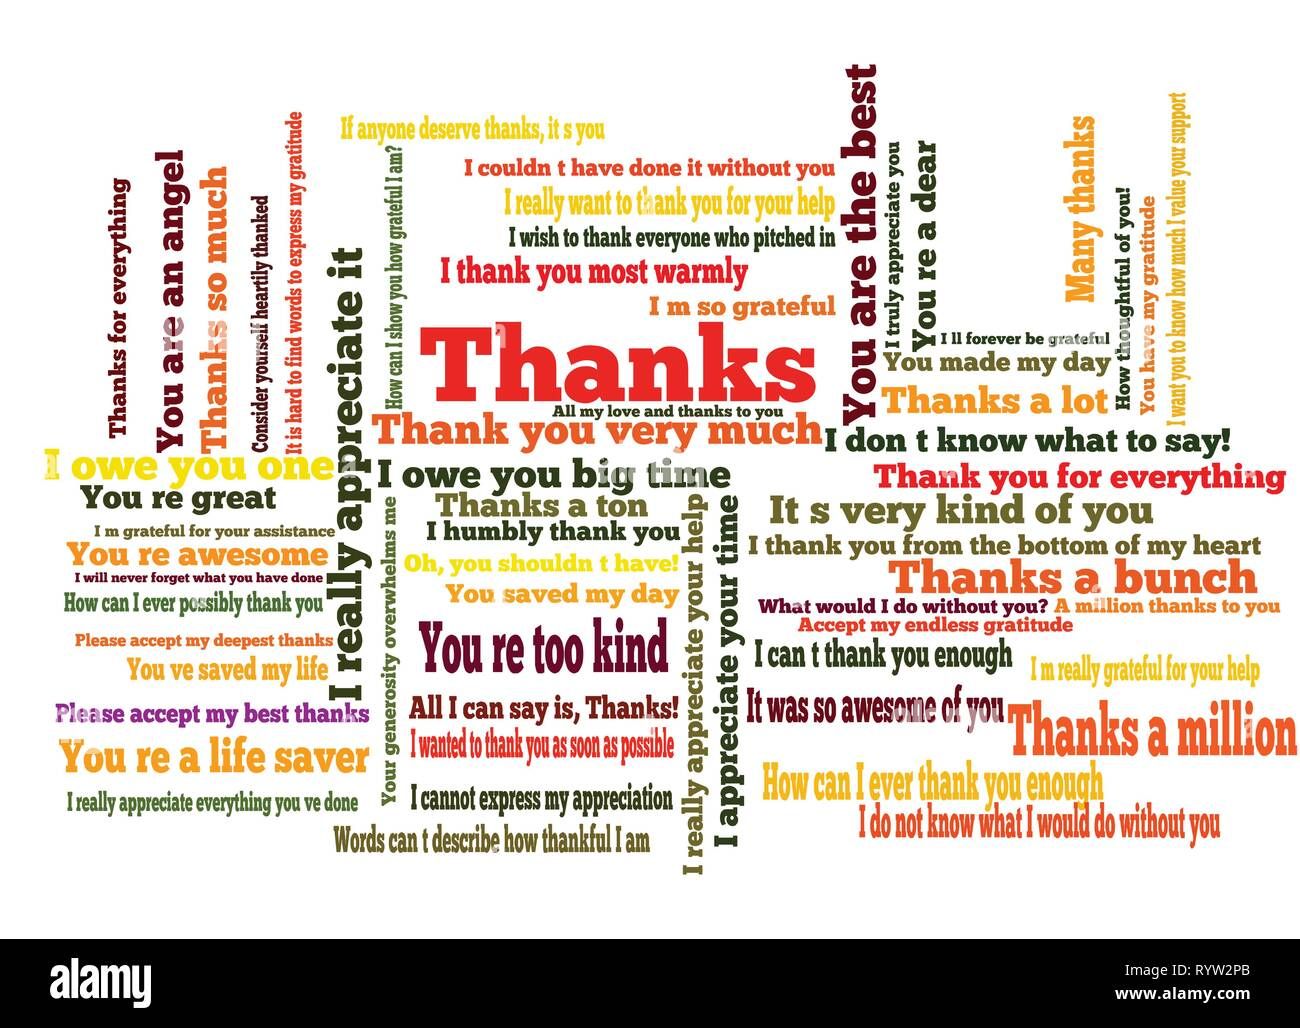 Many ways to say thank you word cloud - Stock Image